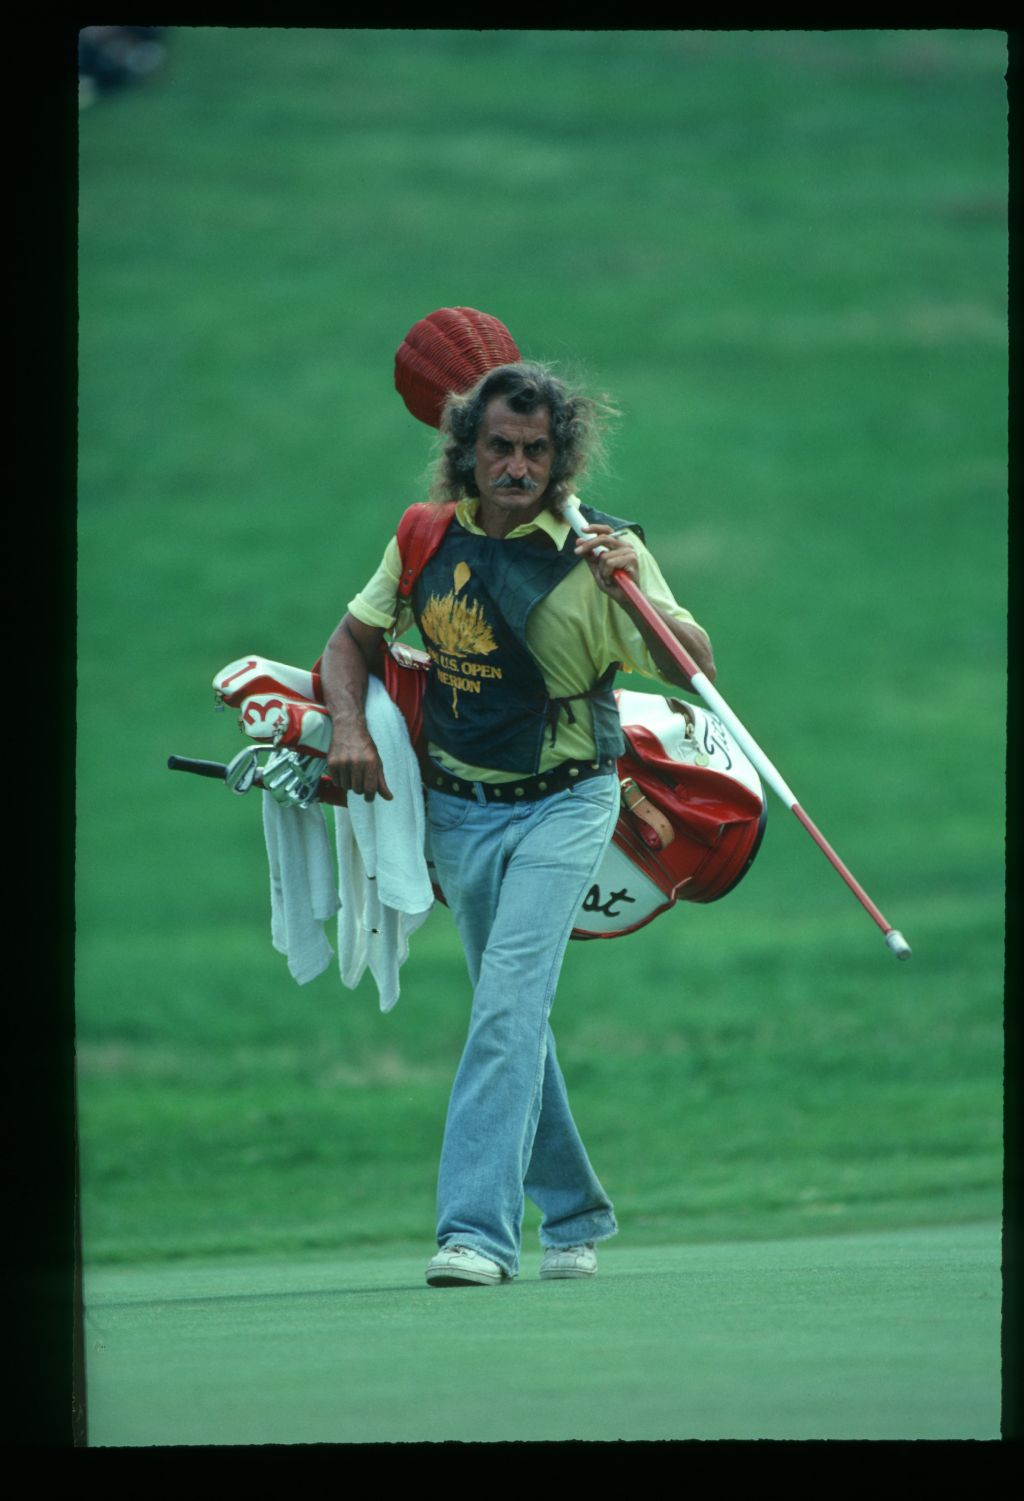 The caddie, Alex. tends the wicker basket as the pin flag at the 1981 U. S. Open Championship at Merion